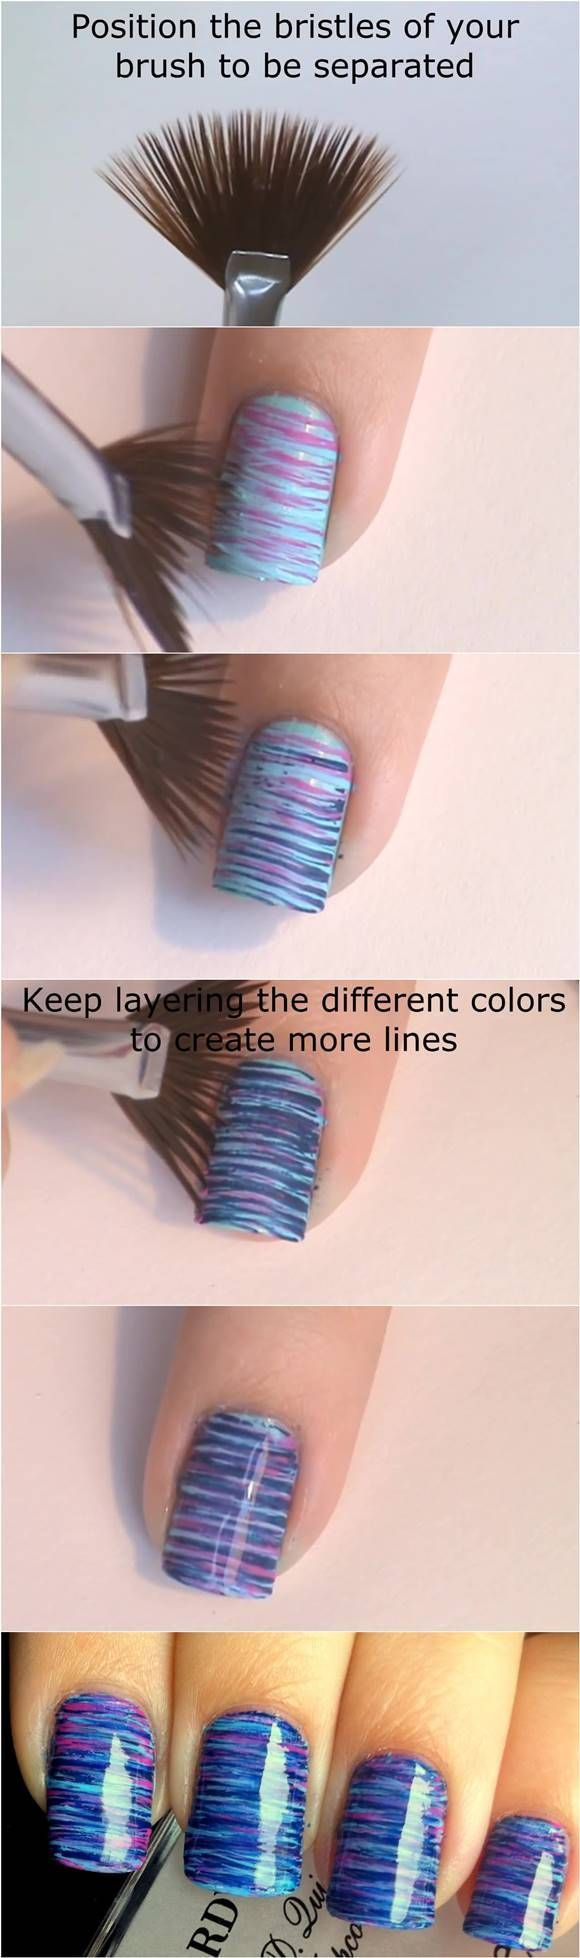 How to DIY Blue and Pink Fan Brush Striped Nail Art | Pinterest ...